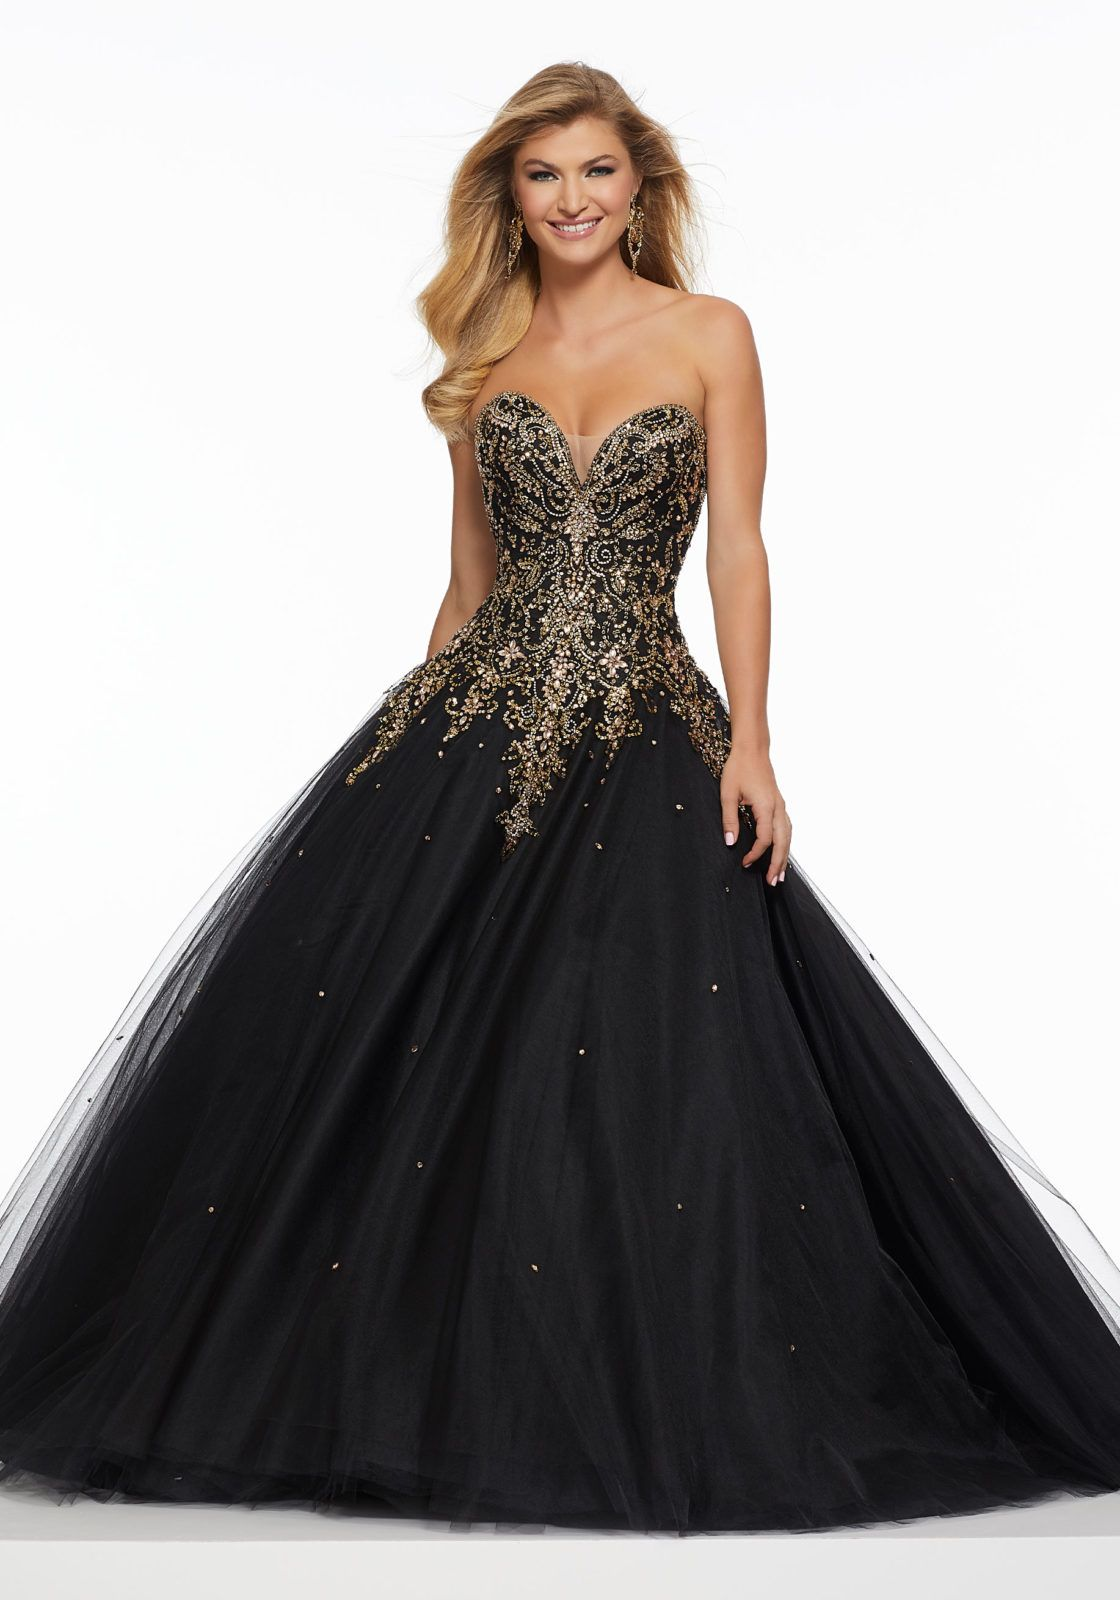 9de014a3573 Contrasting Beading on Tulle in 2019